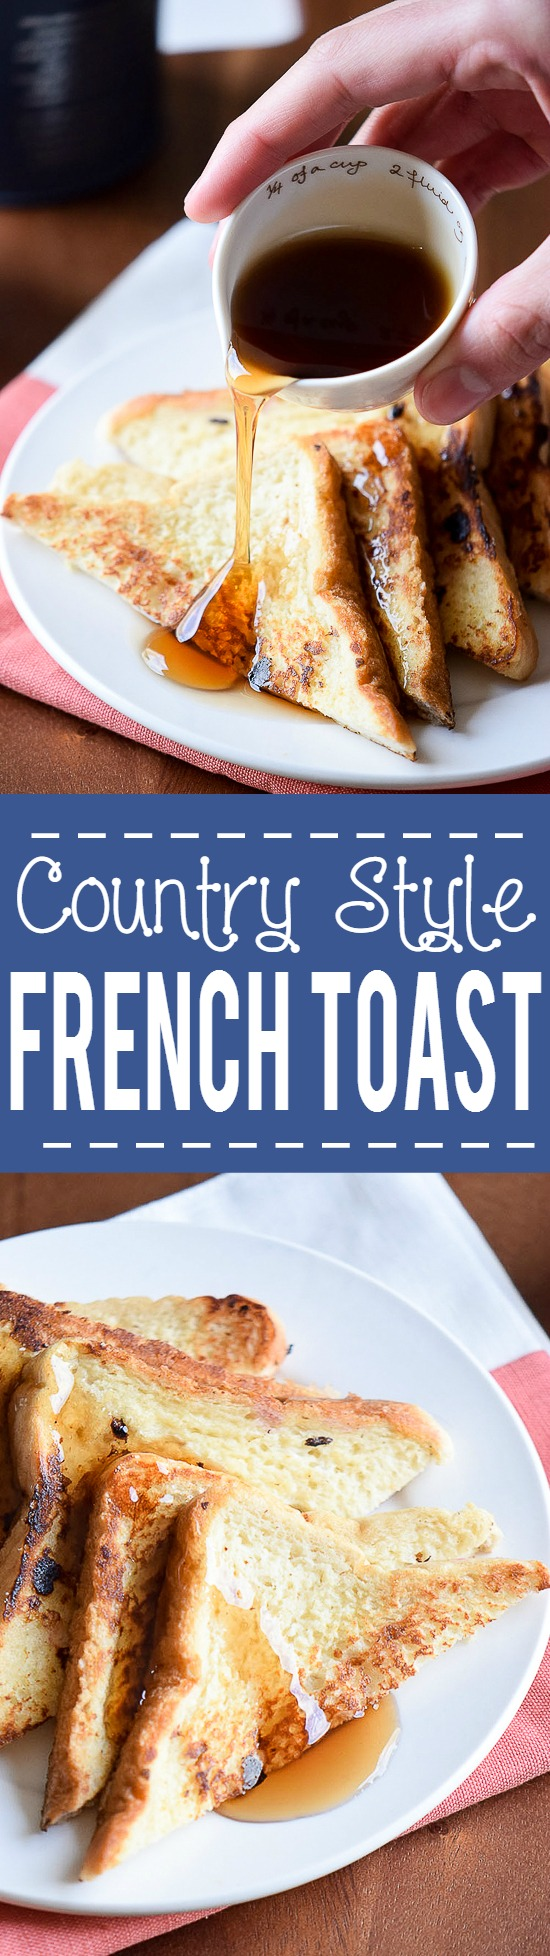 Country French Toast recipe -Classic Country French Toast recipe with simple ingredients is quick and easy to whip up and makes a perfect, yummy breakfast. Top with butter, maple syrup, whipped cream, or berries. Love french toast for an easy breakfast recipe that kids will love!